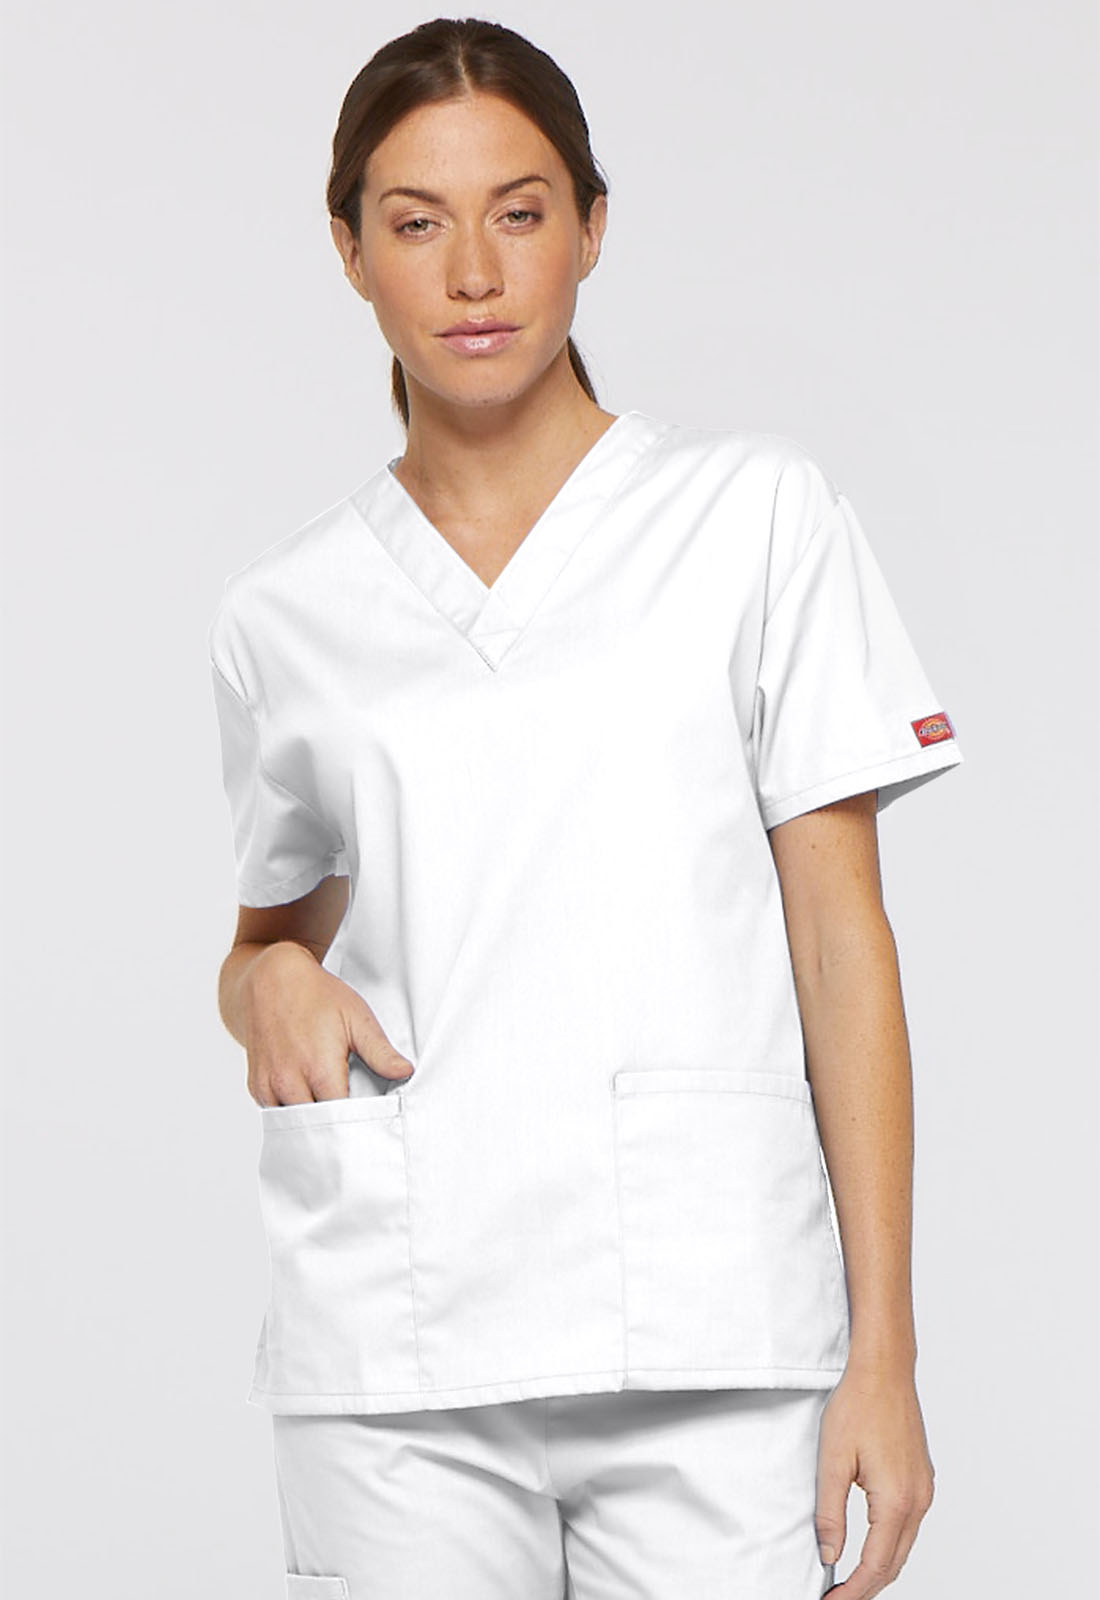 923c4dc5ef2 Dickies EDS Signature V-Neck Top in White from Dickies Medical